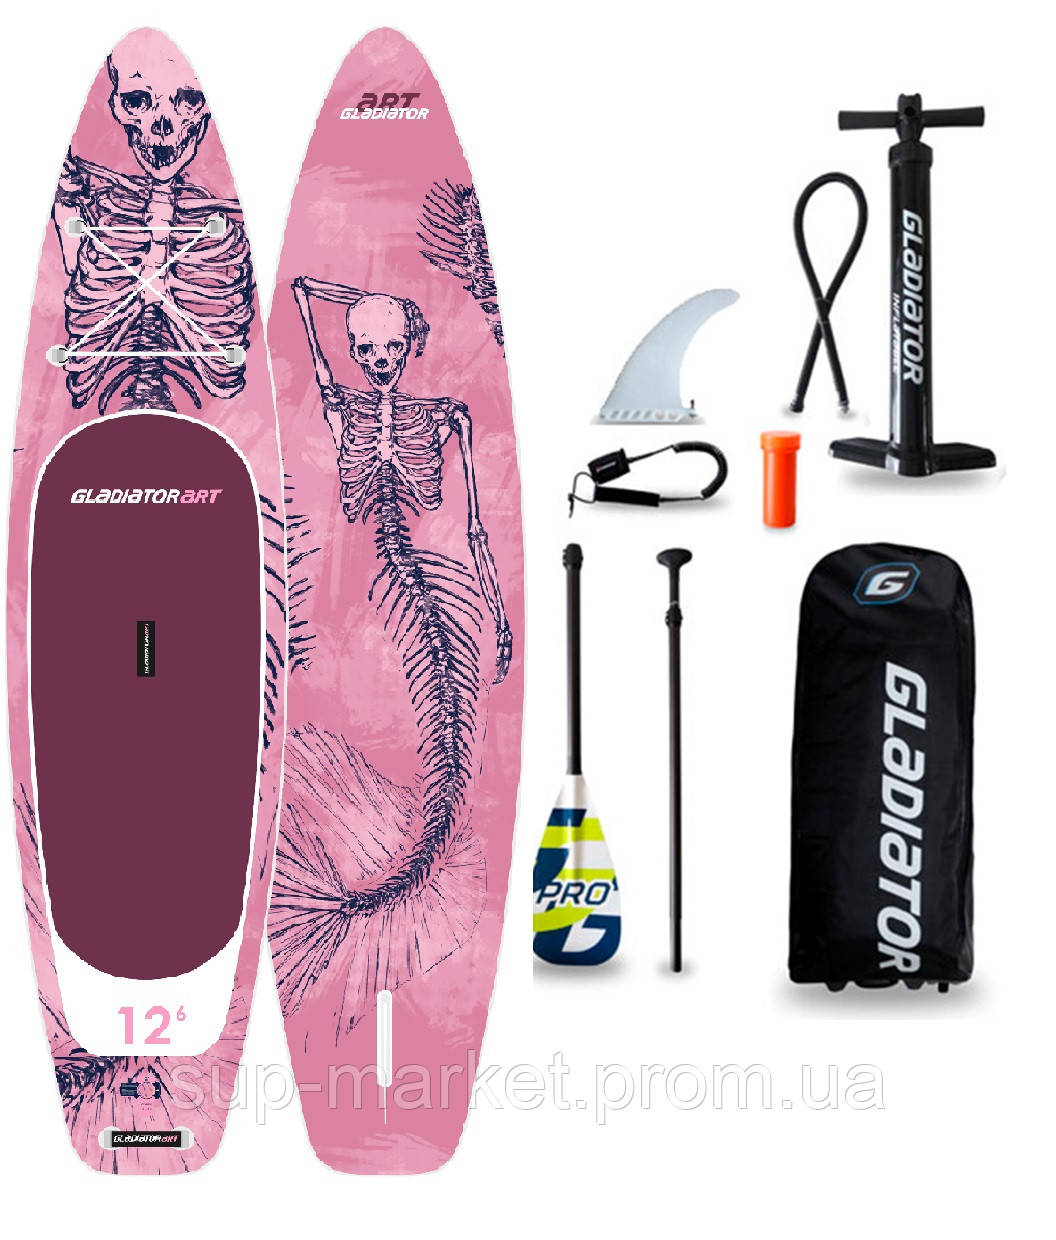 "SUP доска Gladiator MERMAID 12'6"" x 31'' x 6'', 26psi, 2020"